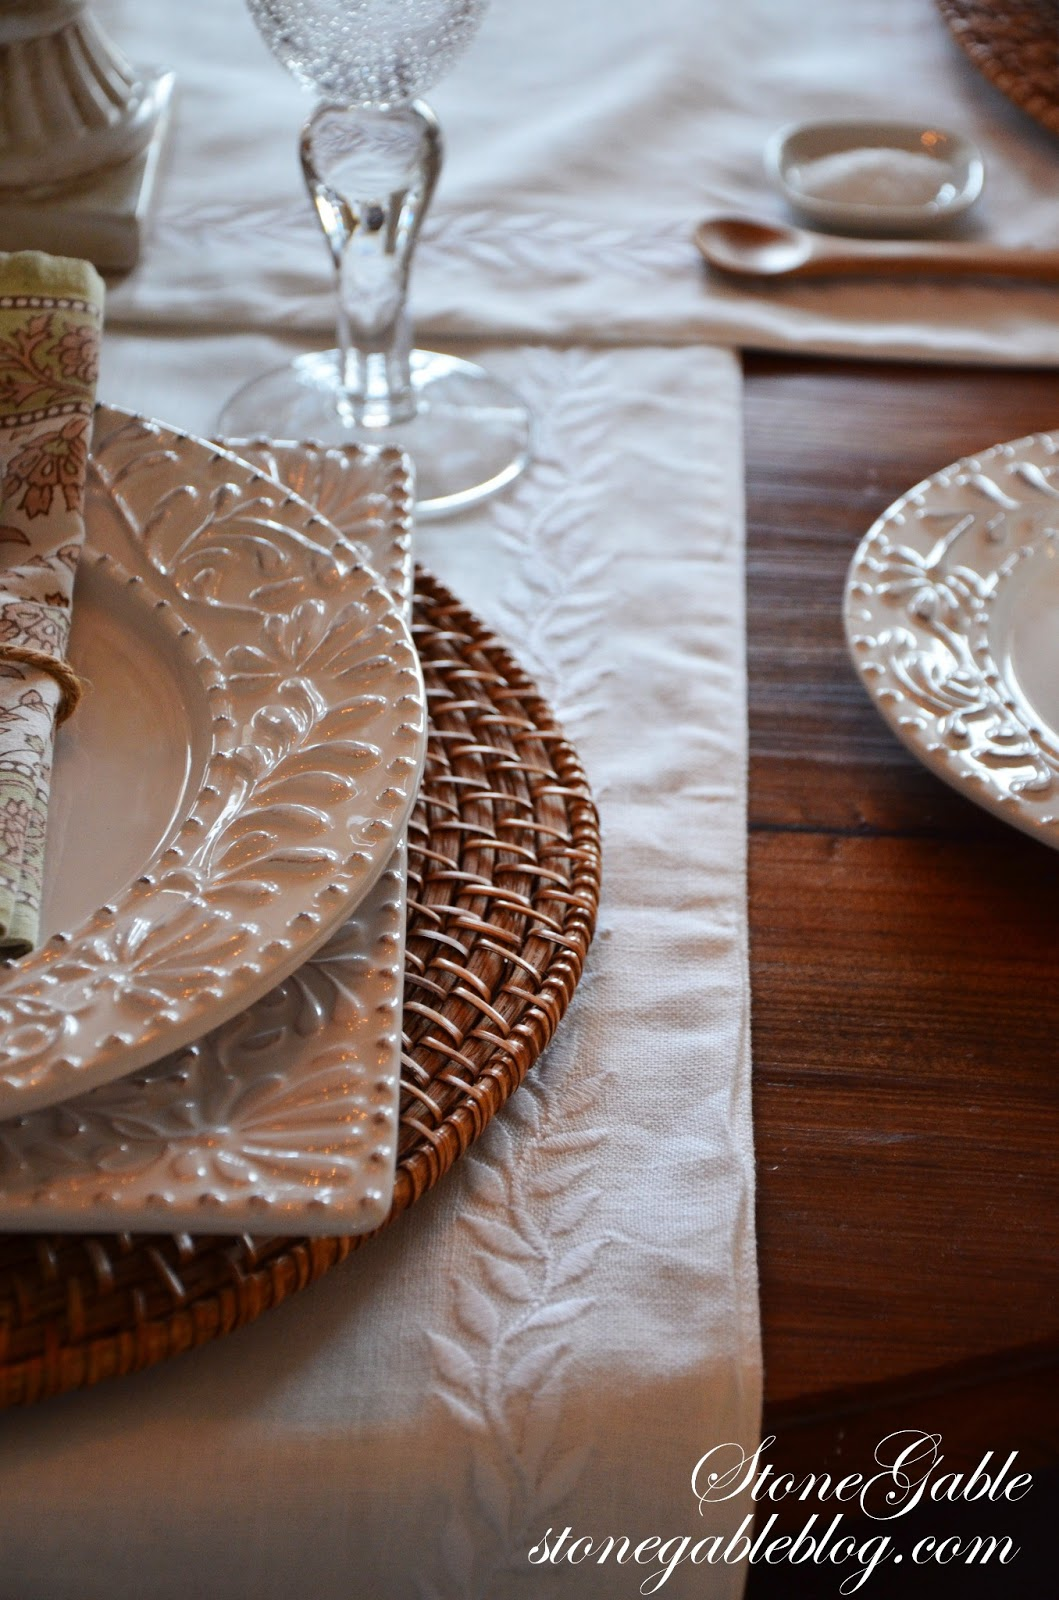 FORMULA FOR SETTING A CASUAL TABLE & FORMULA FOR SETTING A CASUAL TABLE - StoneGable